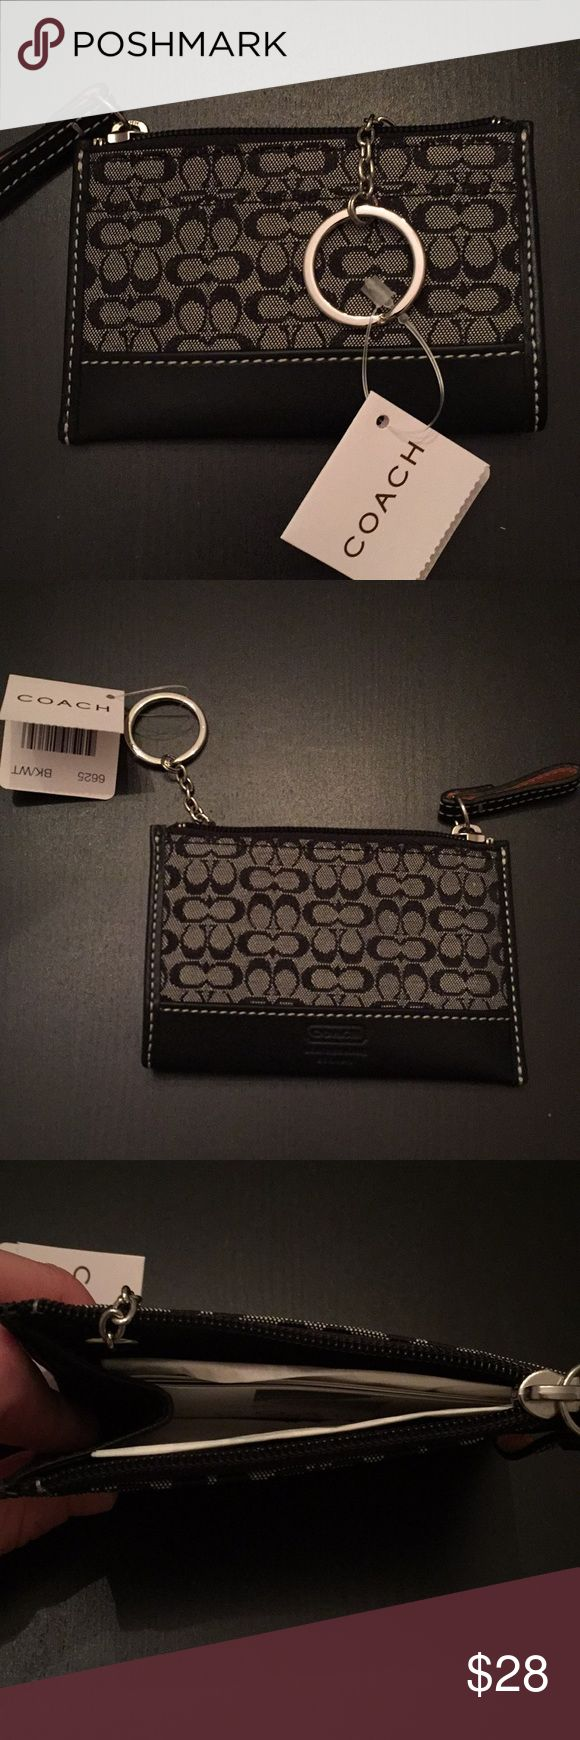 Coach Skinny Wallet in Signature Print Canvas Signature canvas Credit card slot,  Zip-top closure, fabric lining Witg leather details Coach Accessories Key & Card Holders